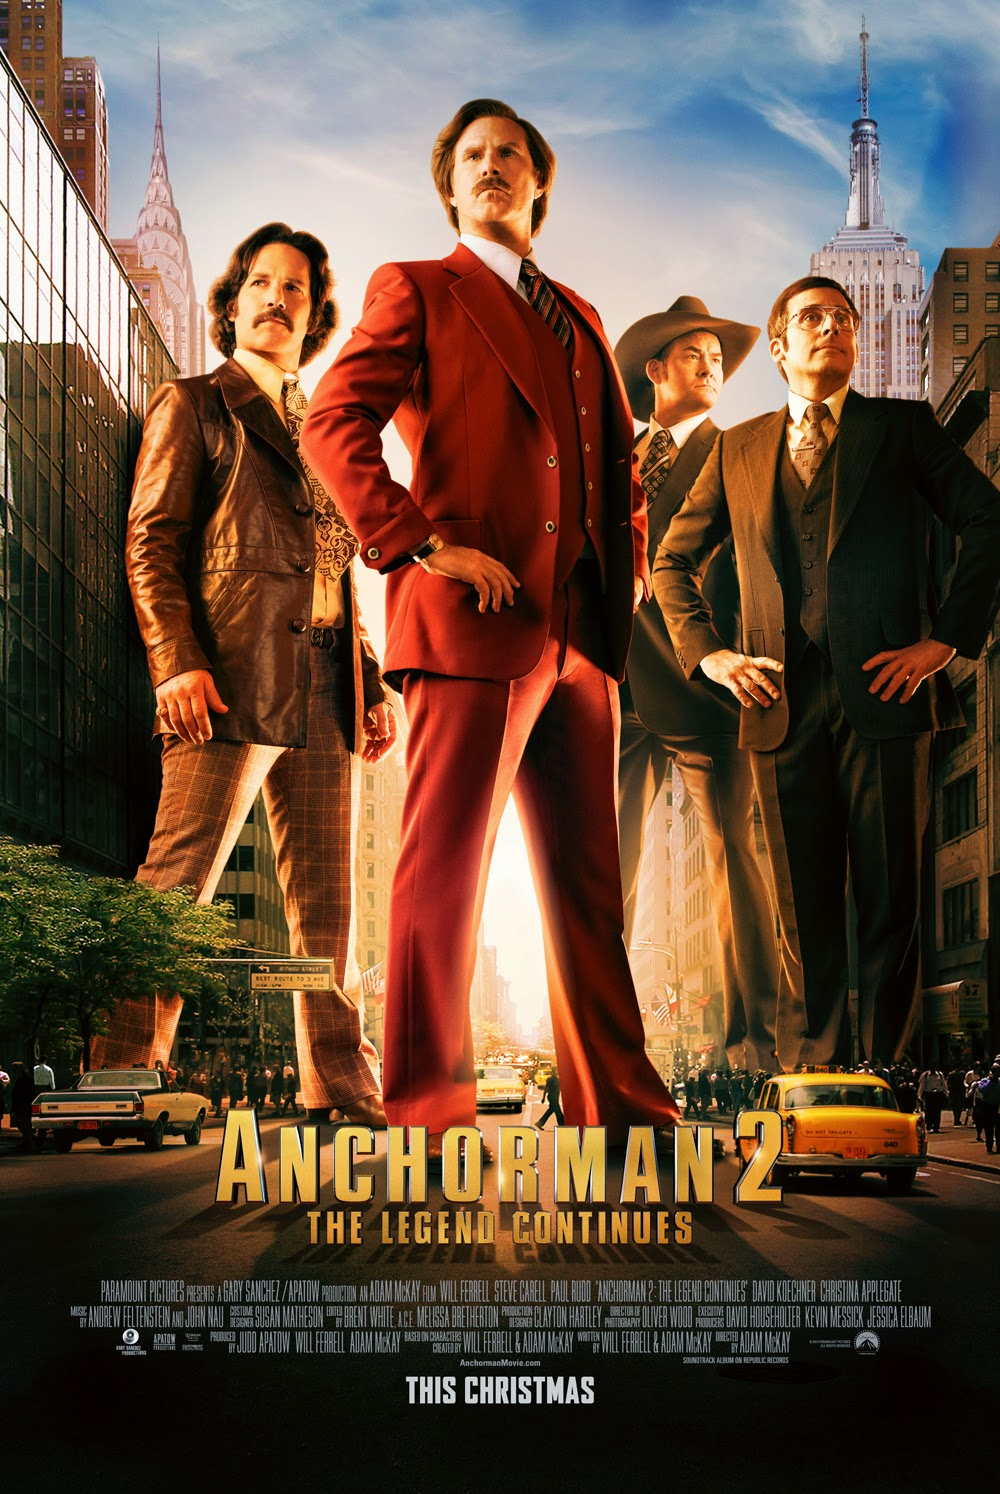 New on DVD & Blu-ray: 'Anchorman 2: The Legend Continues